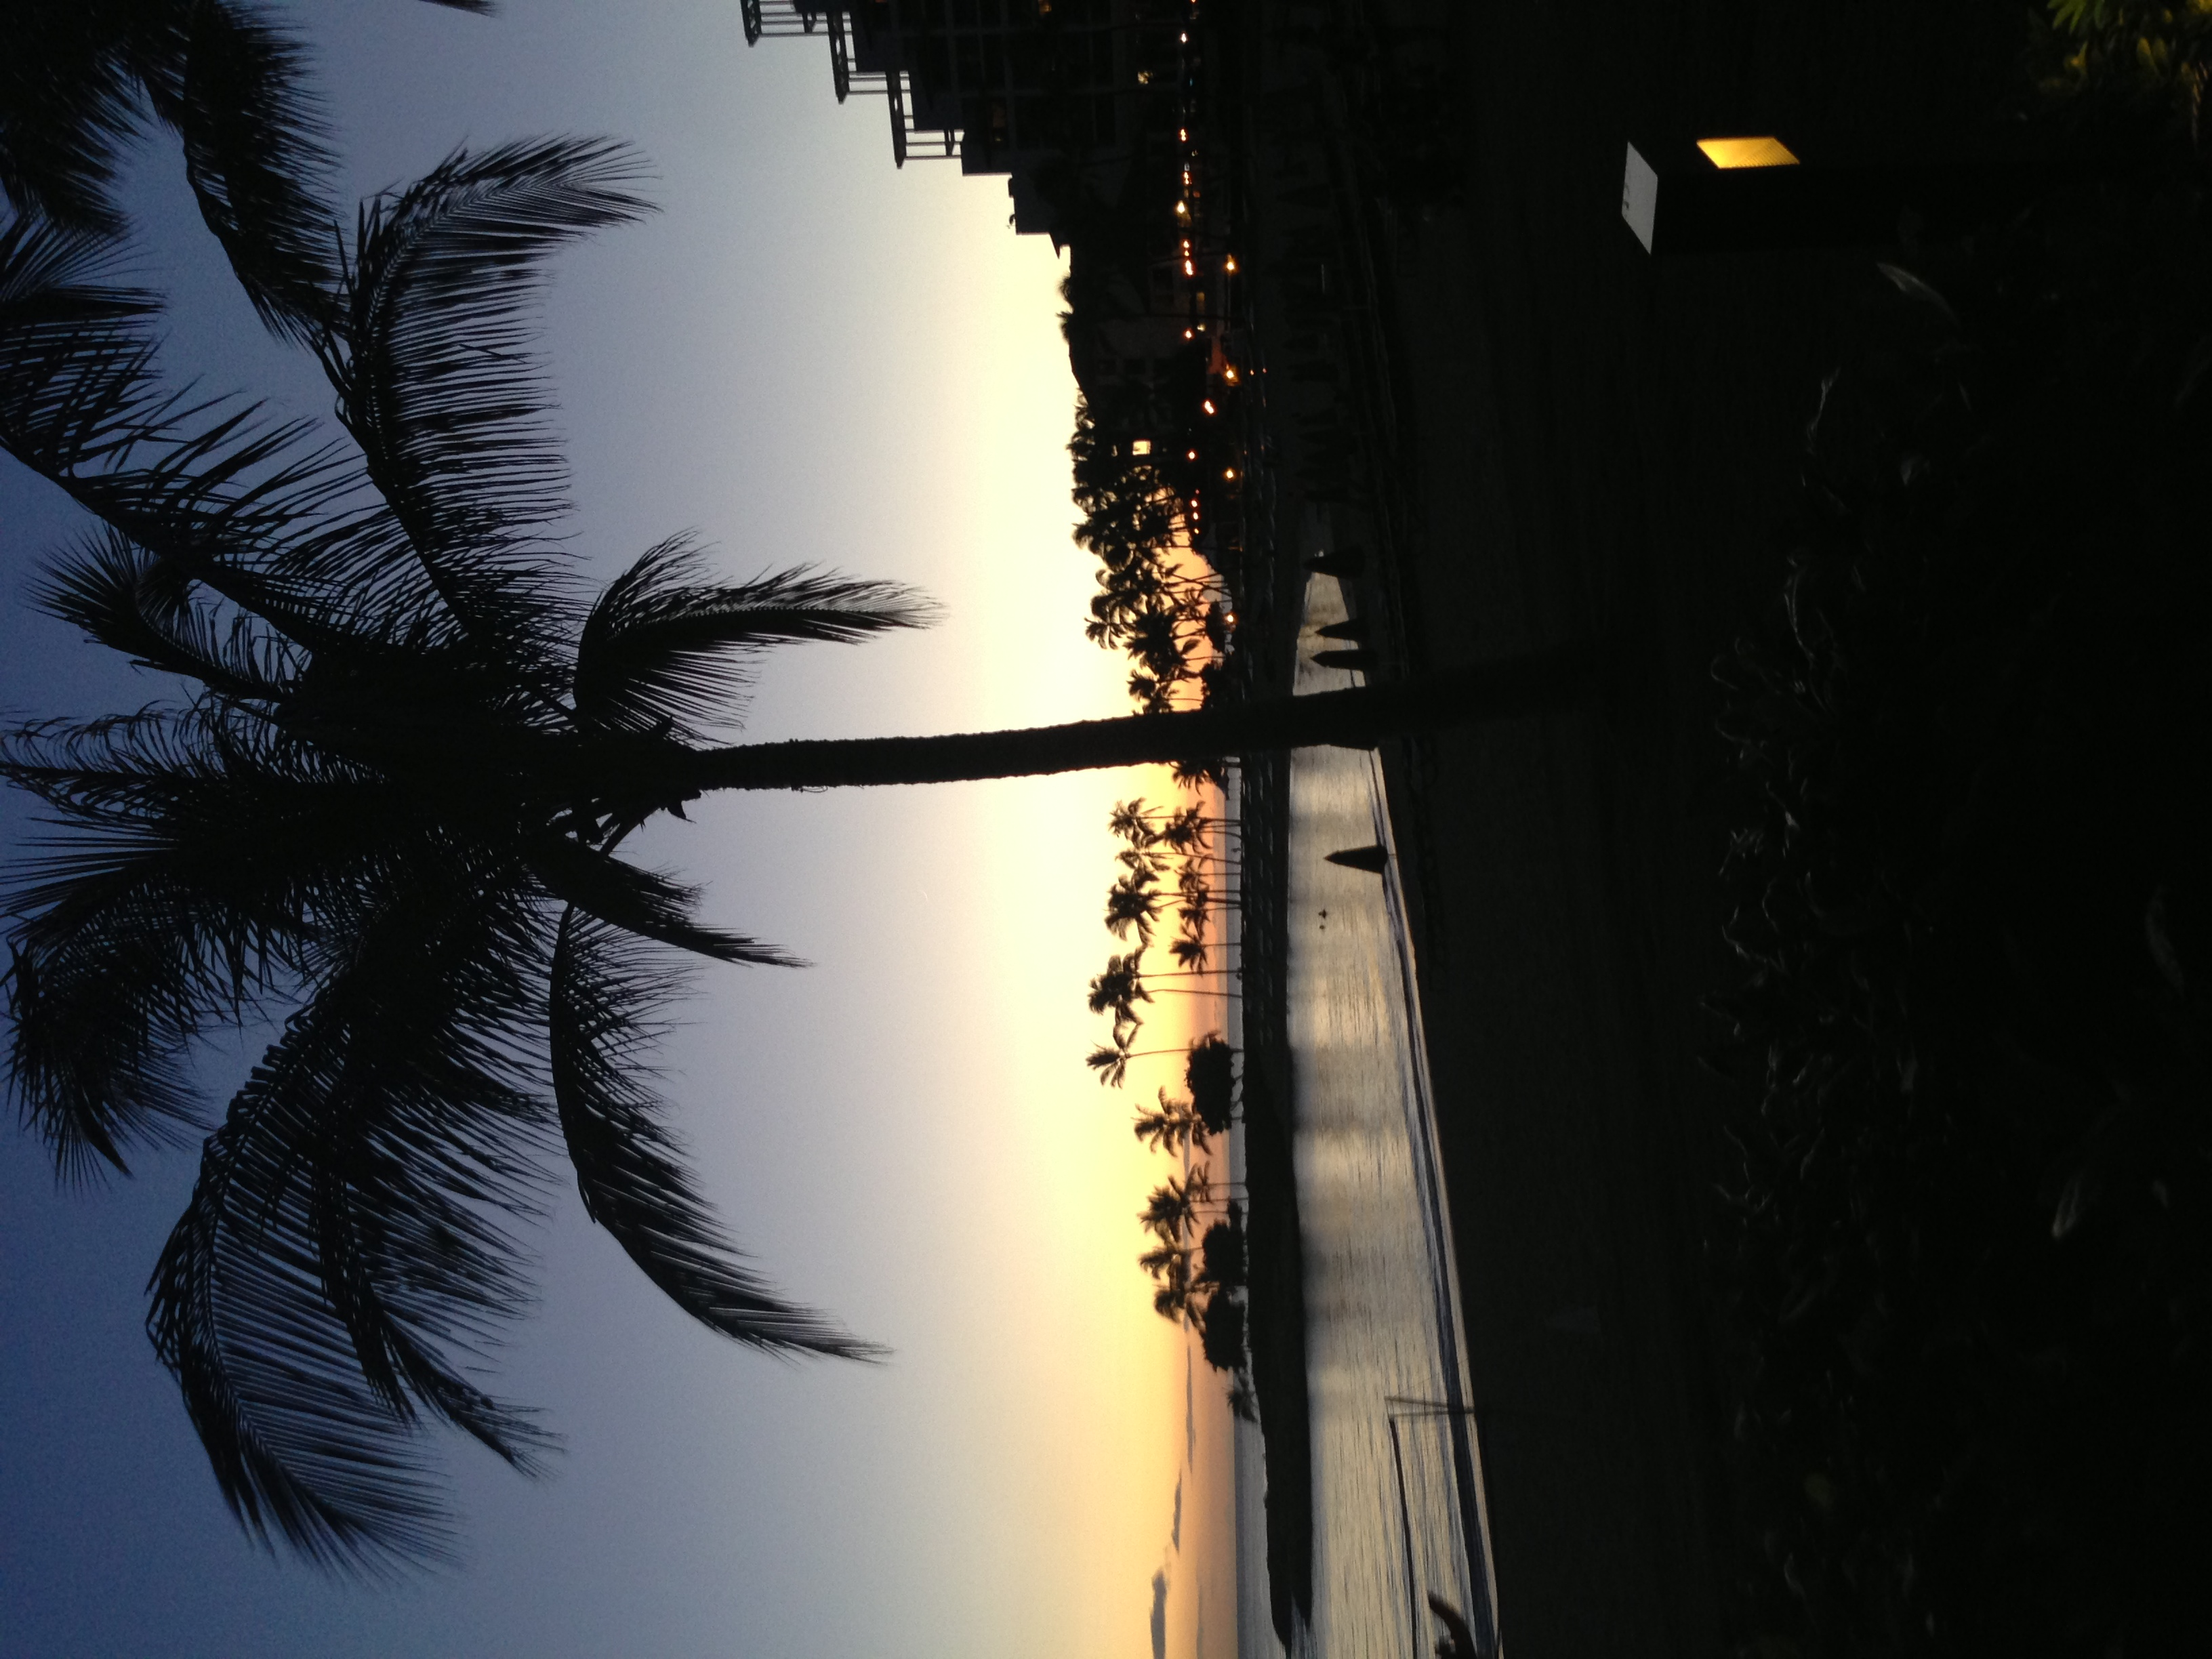 My last night in Hawaii. Amazing sunset (and the company wasn't too shabby either...!!!)